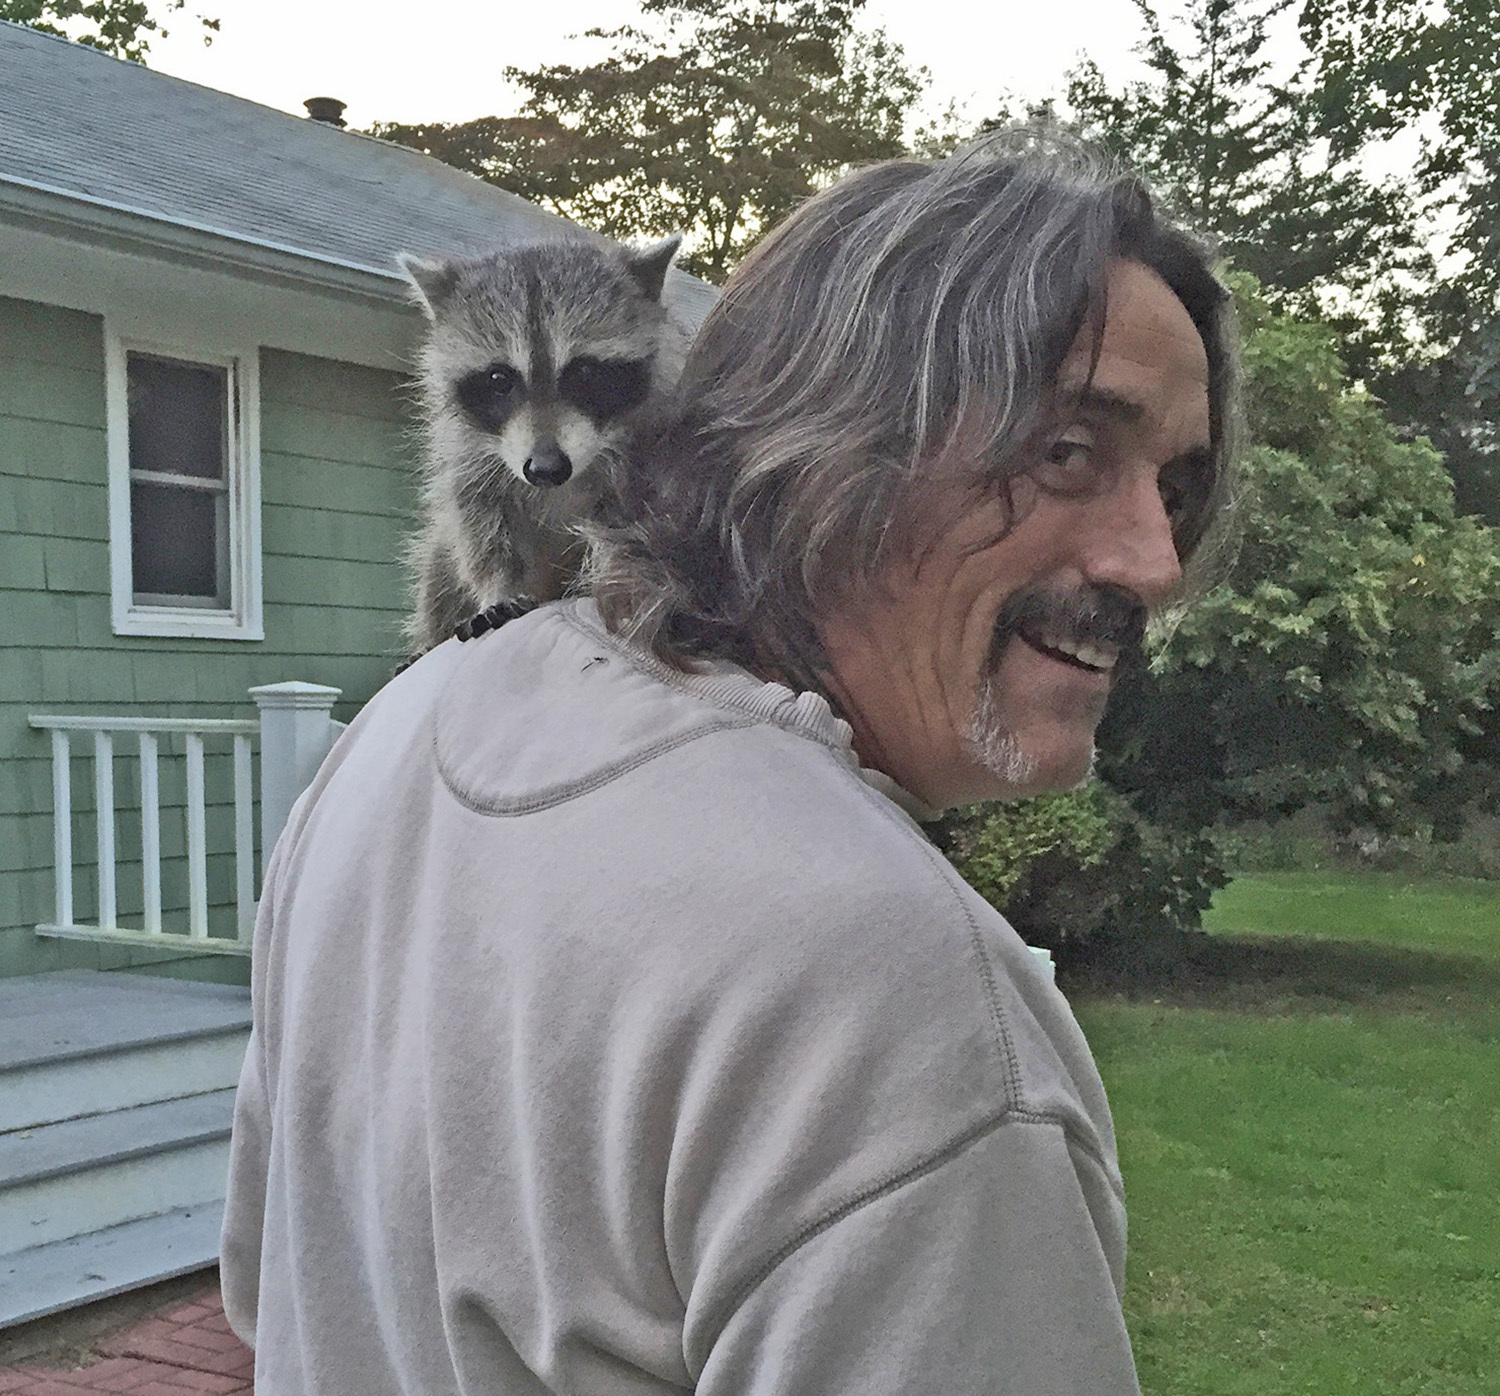 A rescued raccoon hitches a ride on Dell Cullum's shoulder. COURTESY DELL CULLUM